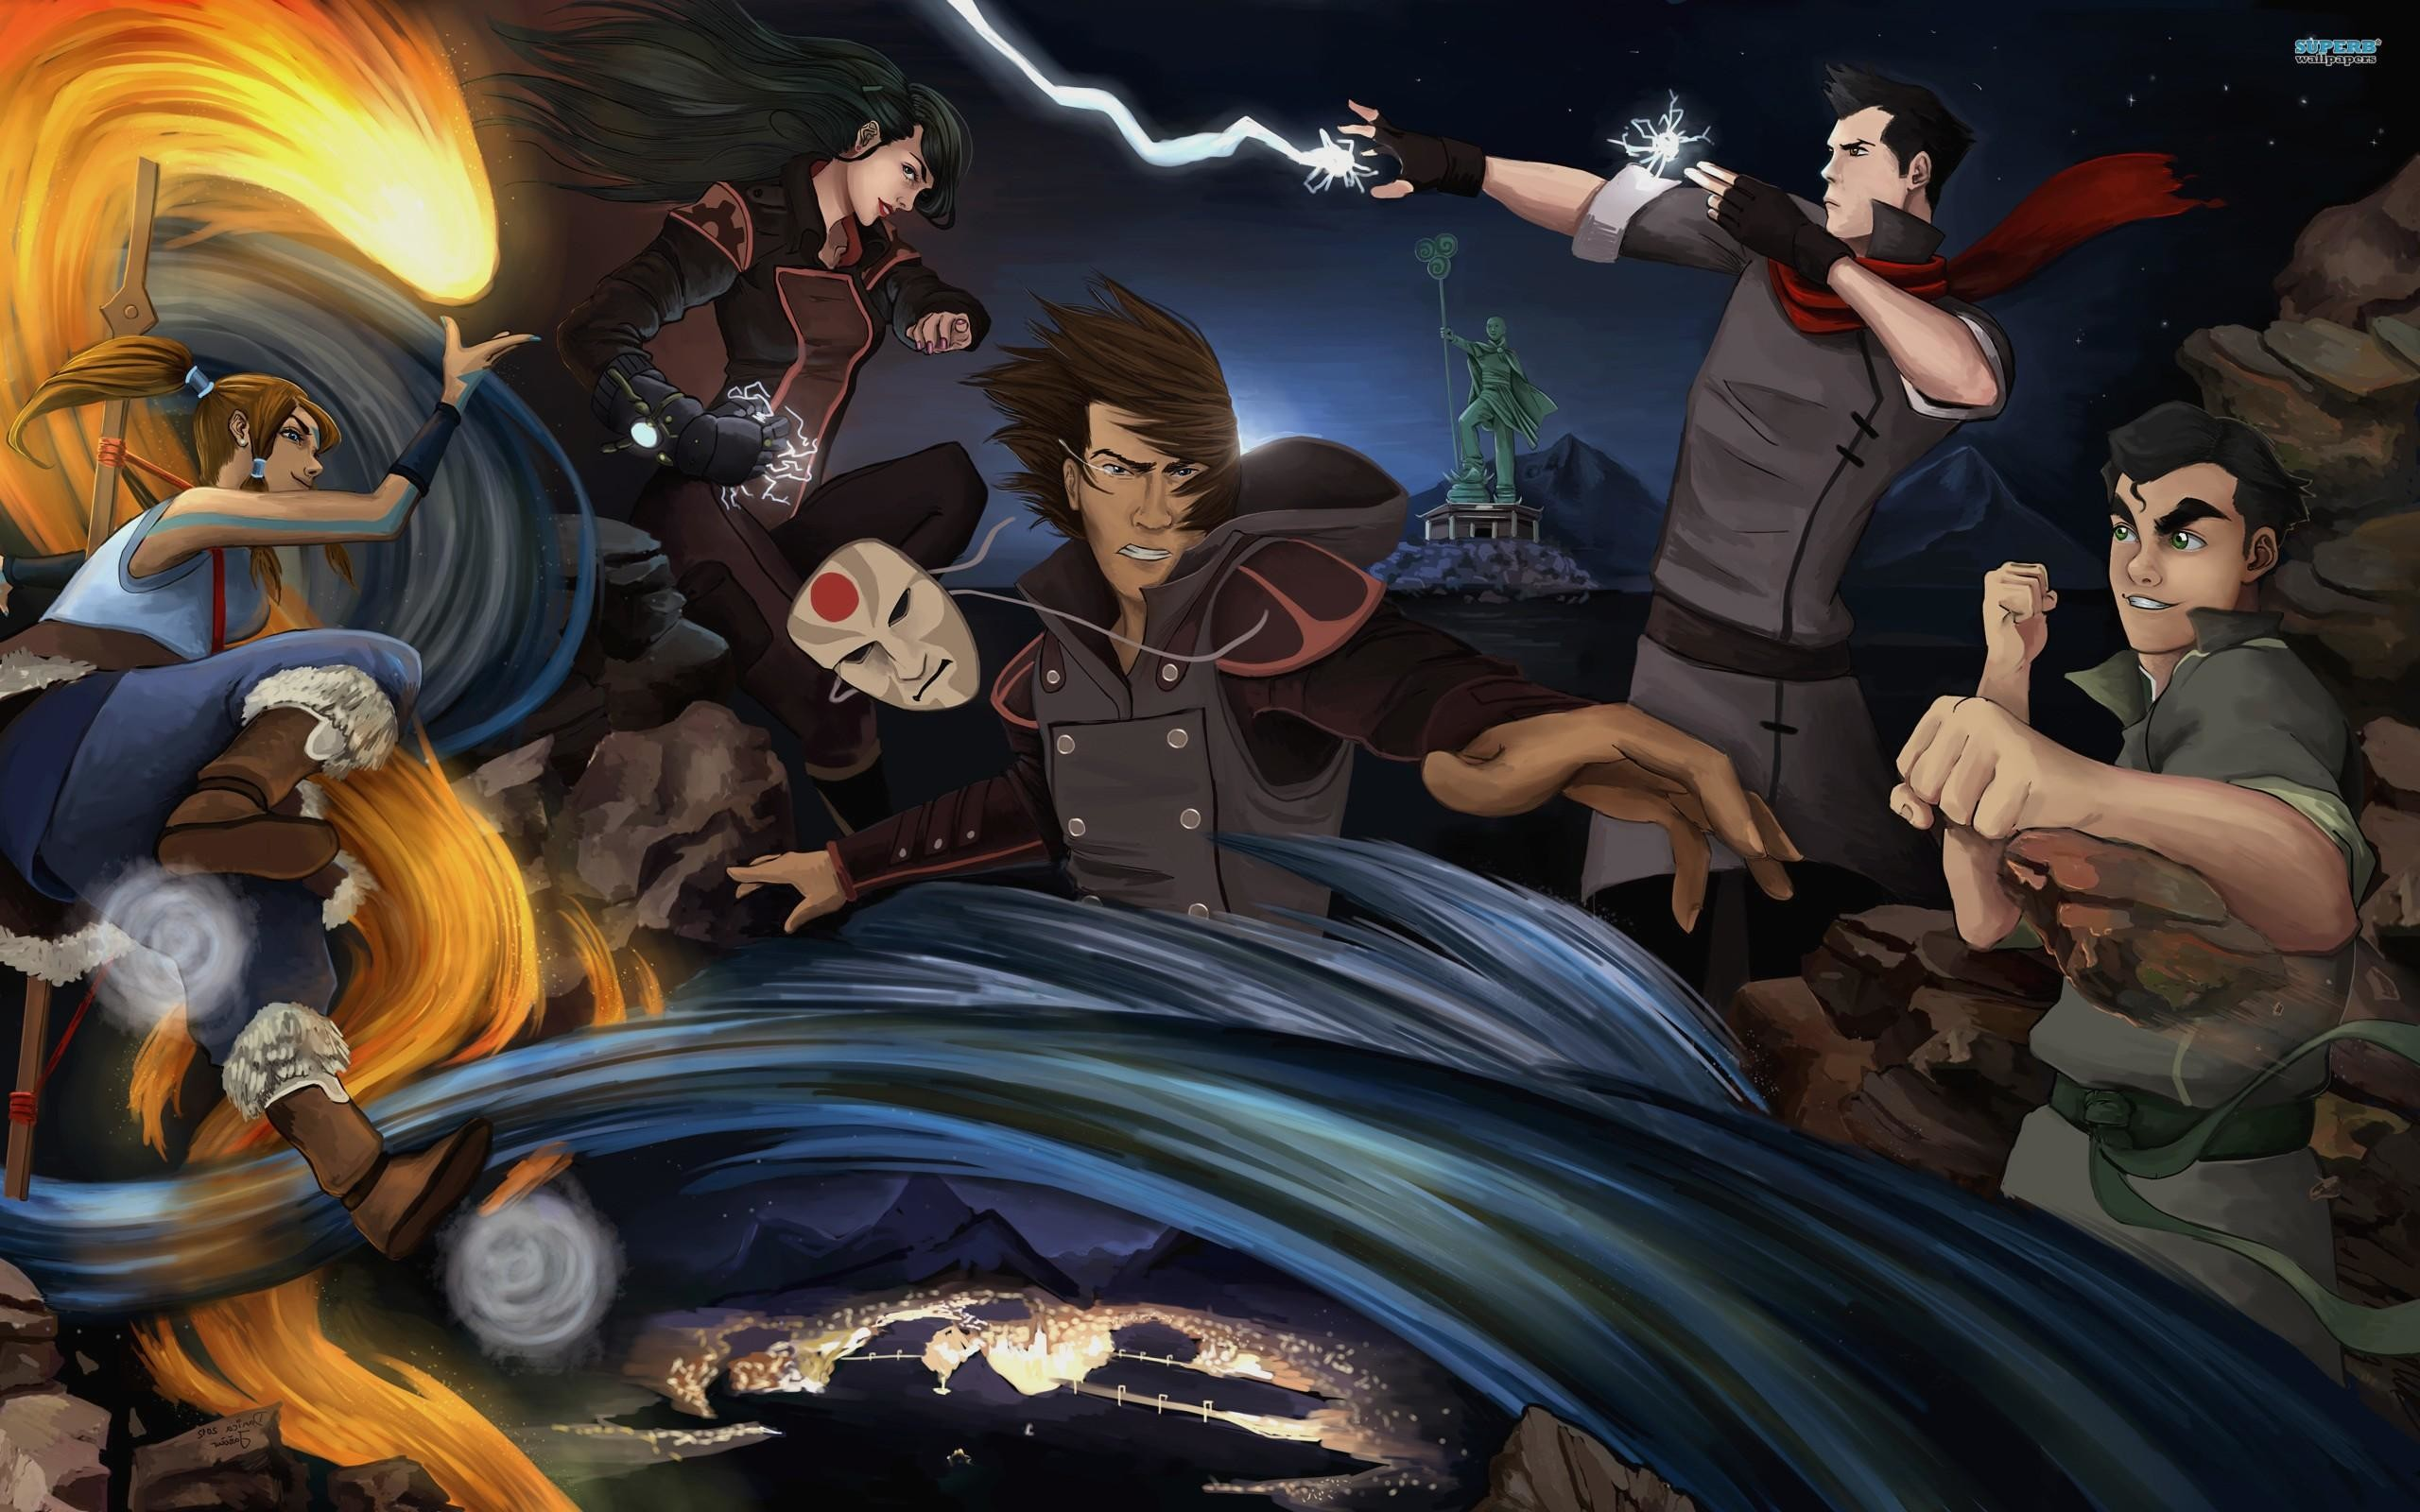 2560x1600 Avatar The Legend Of Korra desktop wallpaper